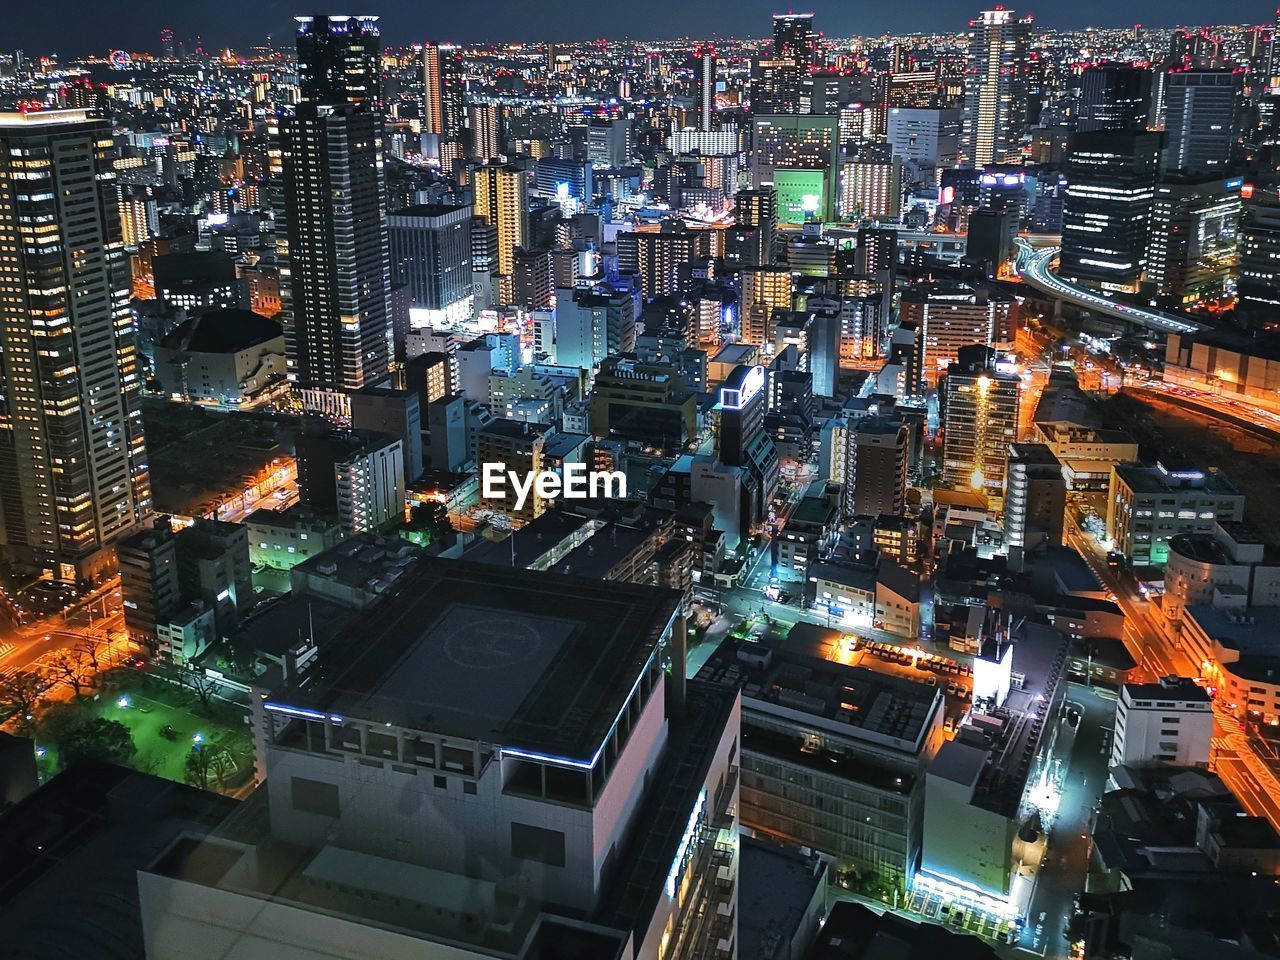 building exterior, city, cityscape, architecture, built structure, illuminated, high angle view, building, office building exterior, night, crowd, crowded, skyscraper, residential district, city life, modern, tall - high, tower, financial district, outdoors, spire